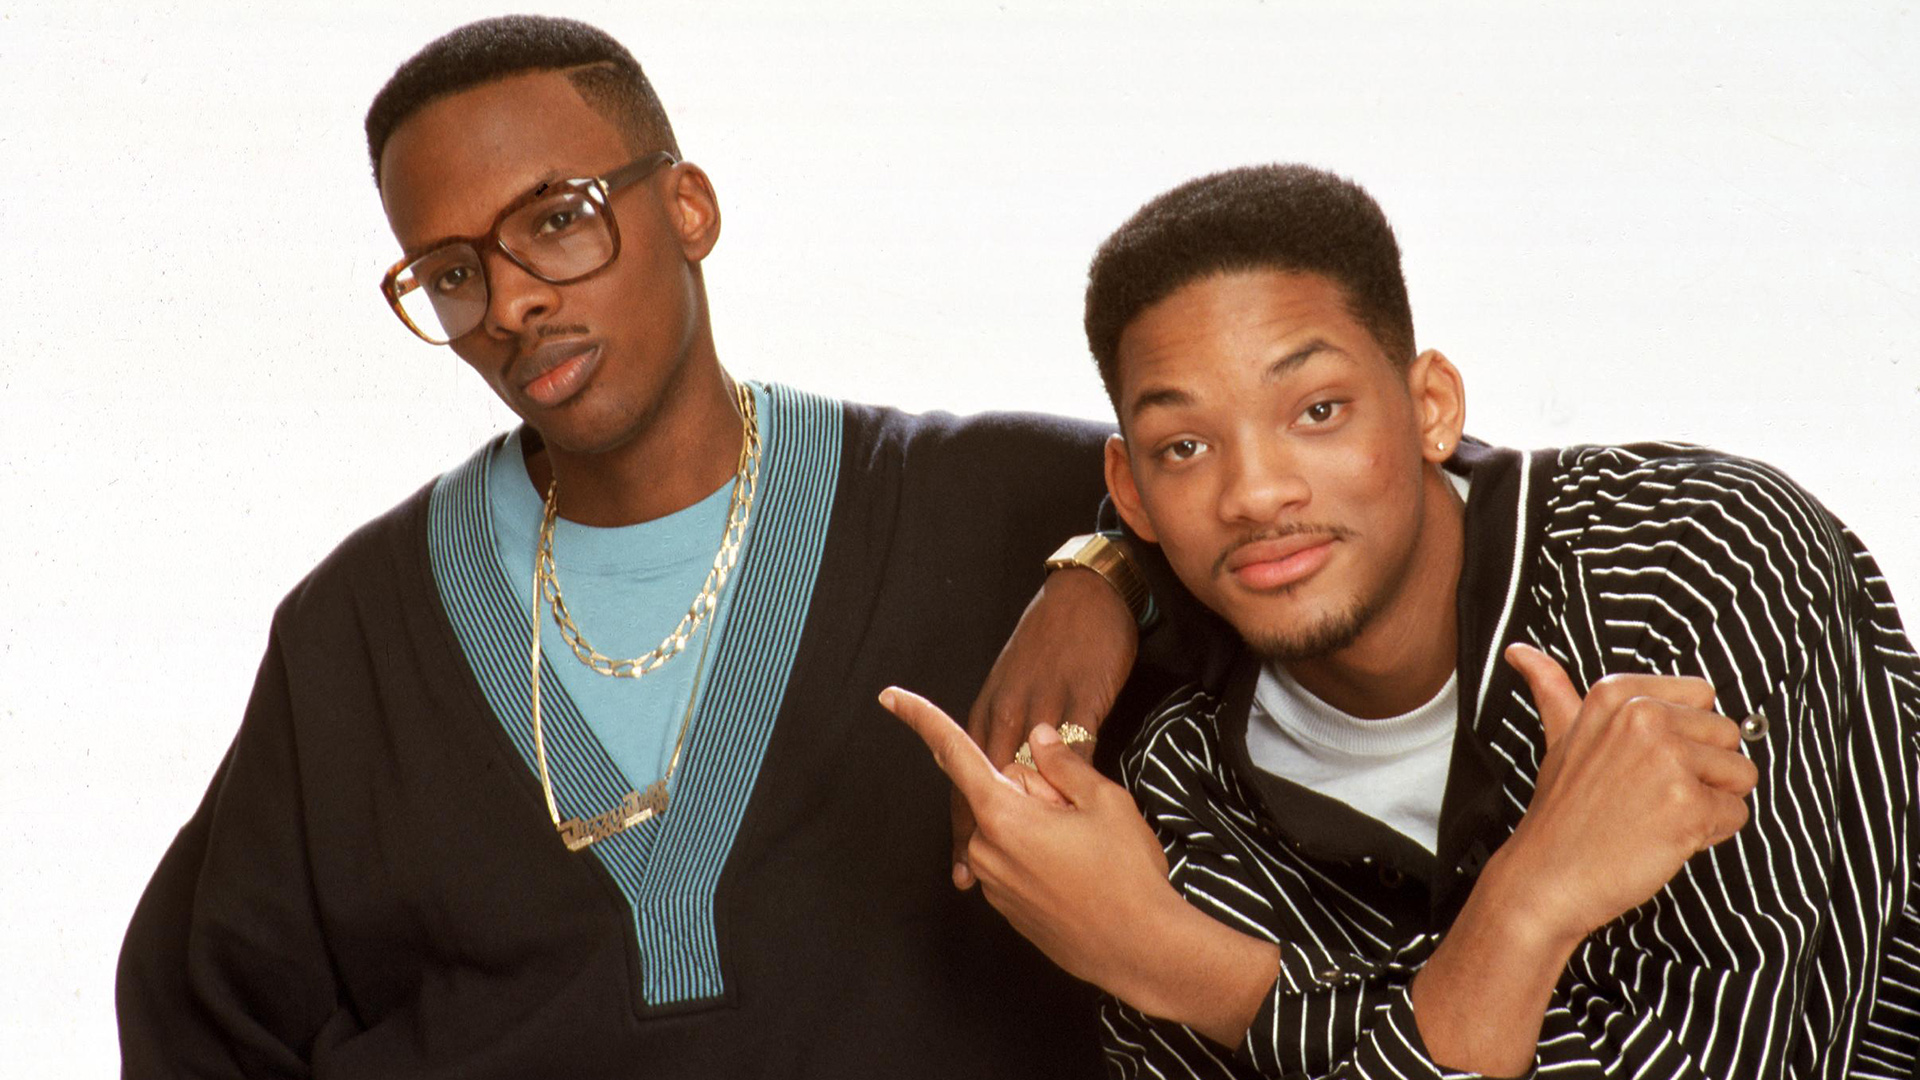 bel air asian single men Bel-air the fresh prince of bel-air defined a boyz ii men had a connection to the youngest banks but now that holmes is a single lady.